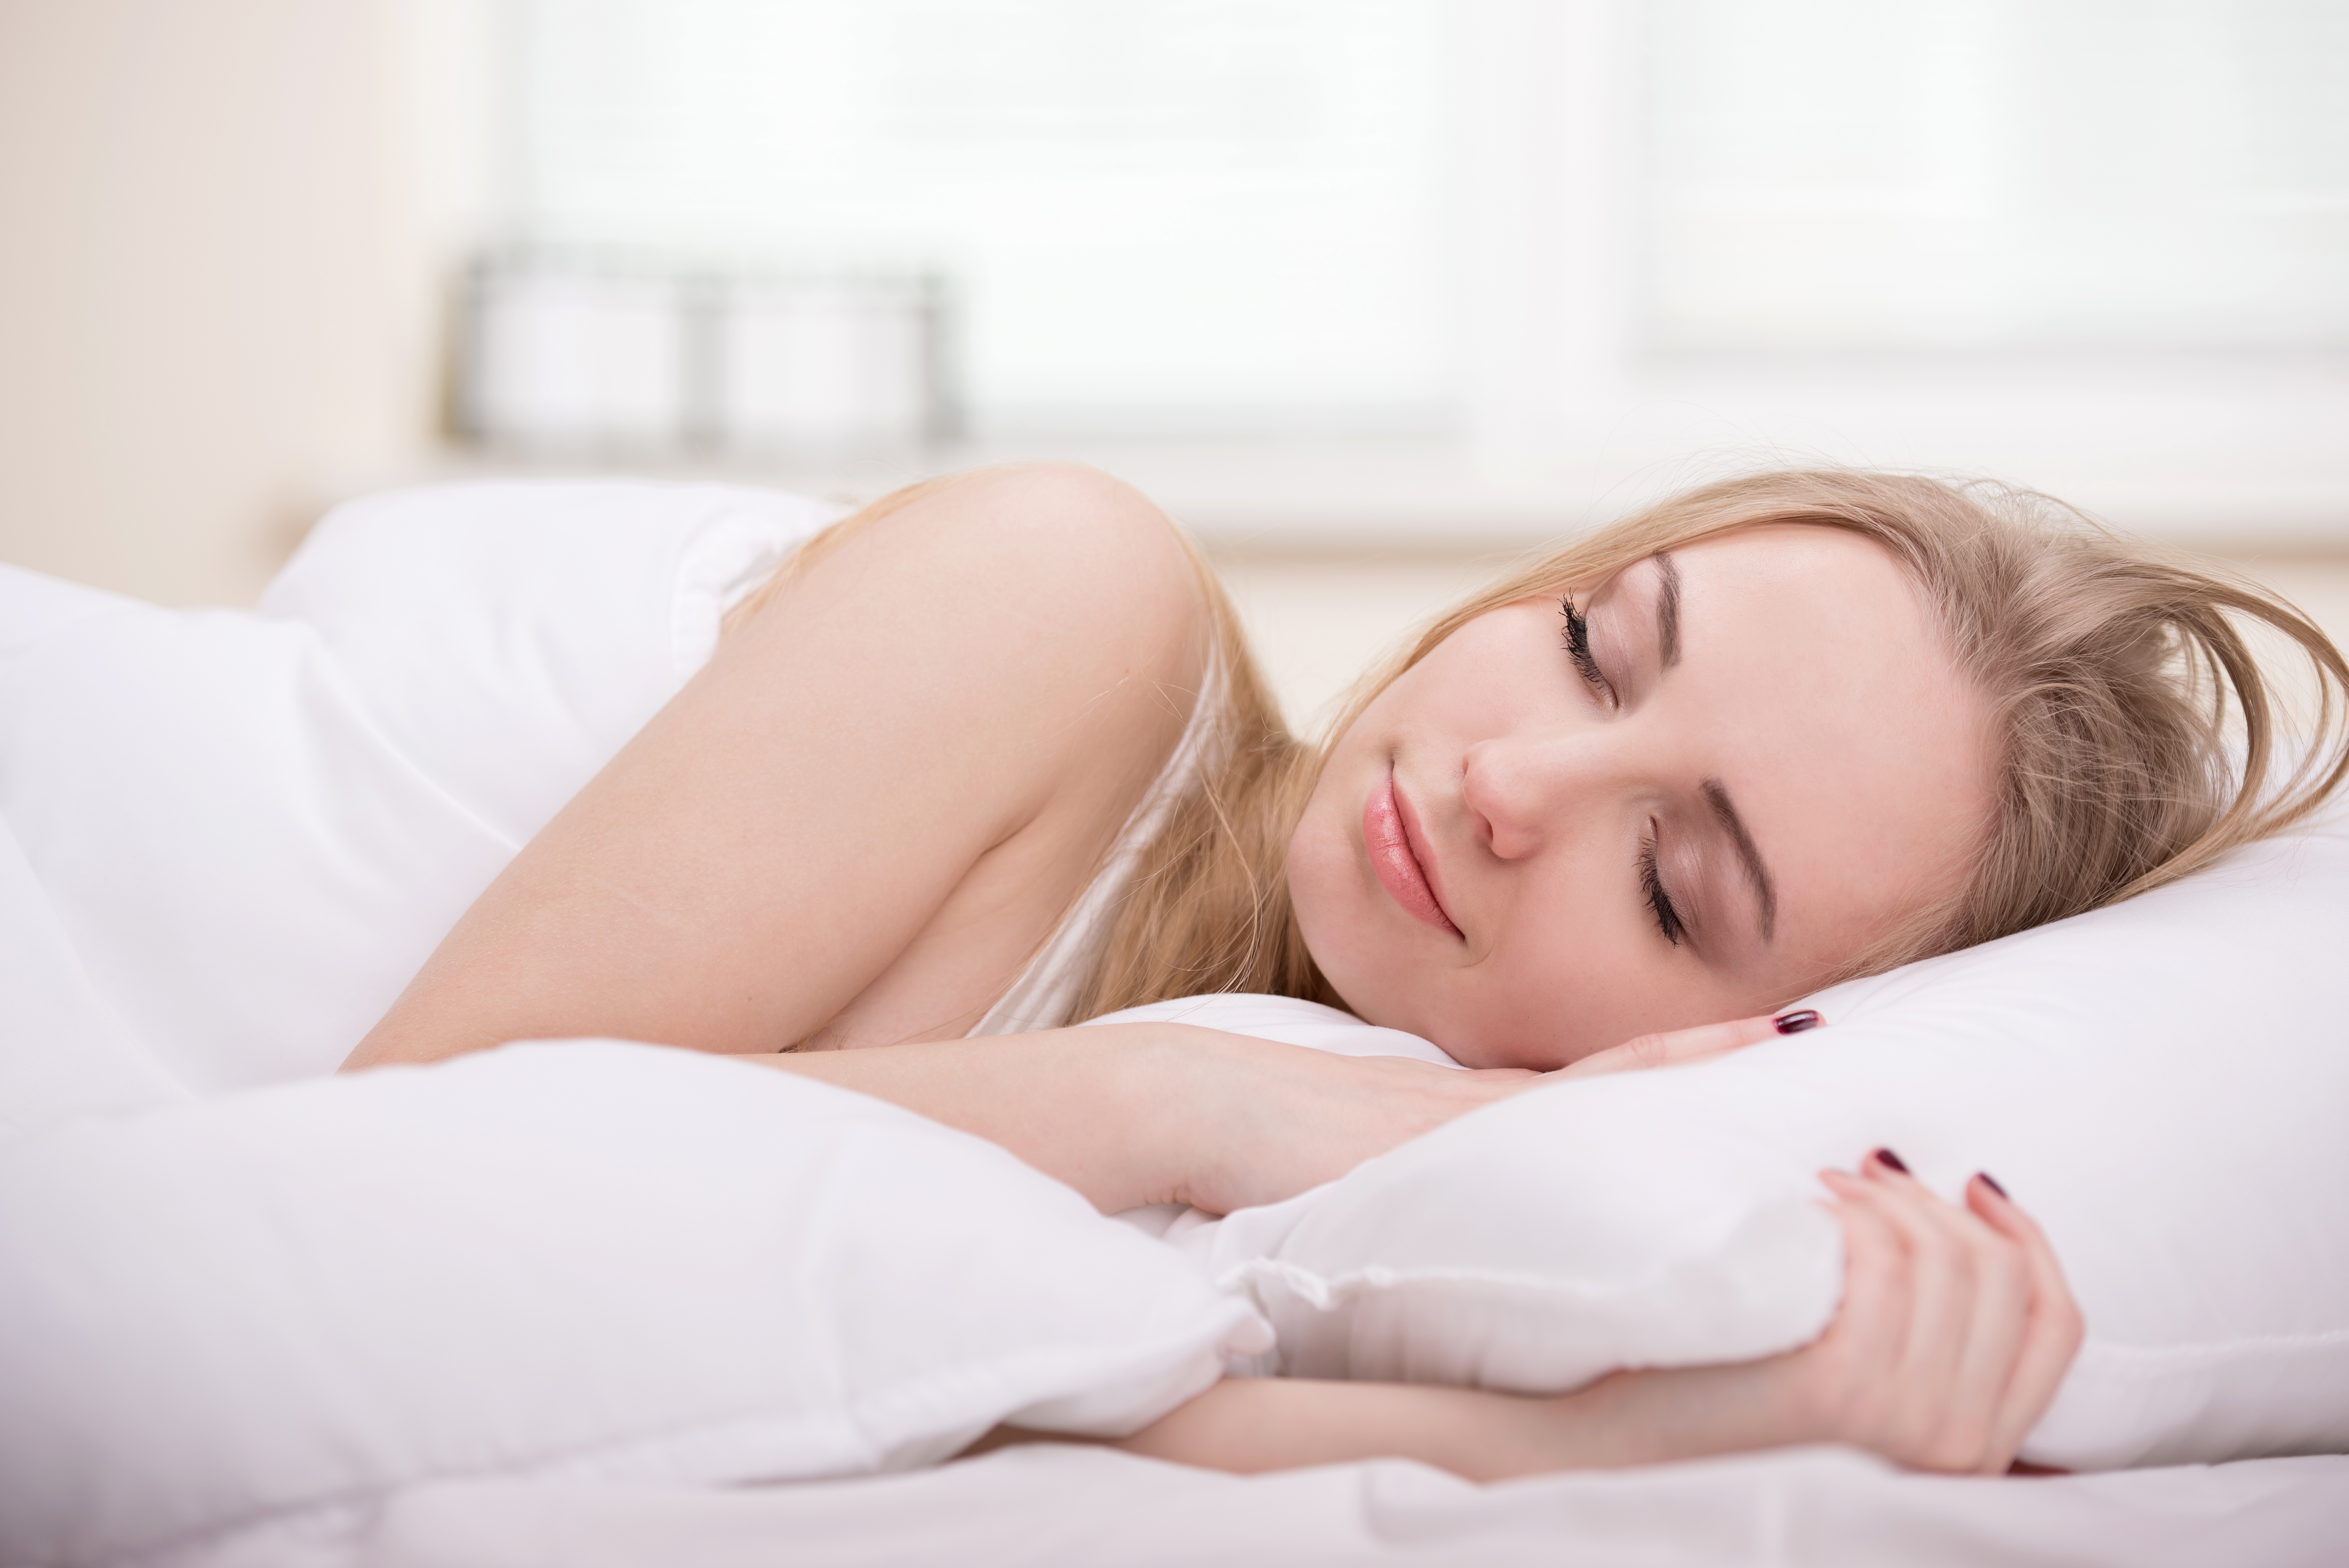 The 4 skin issues that can be solved by a good night's sleep